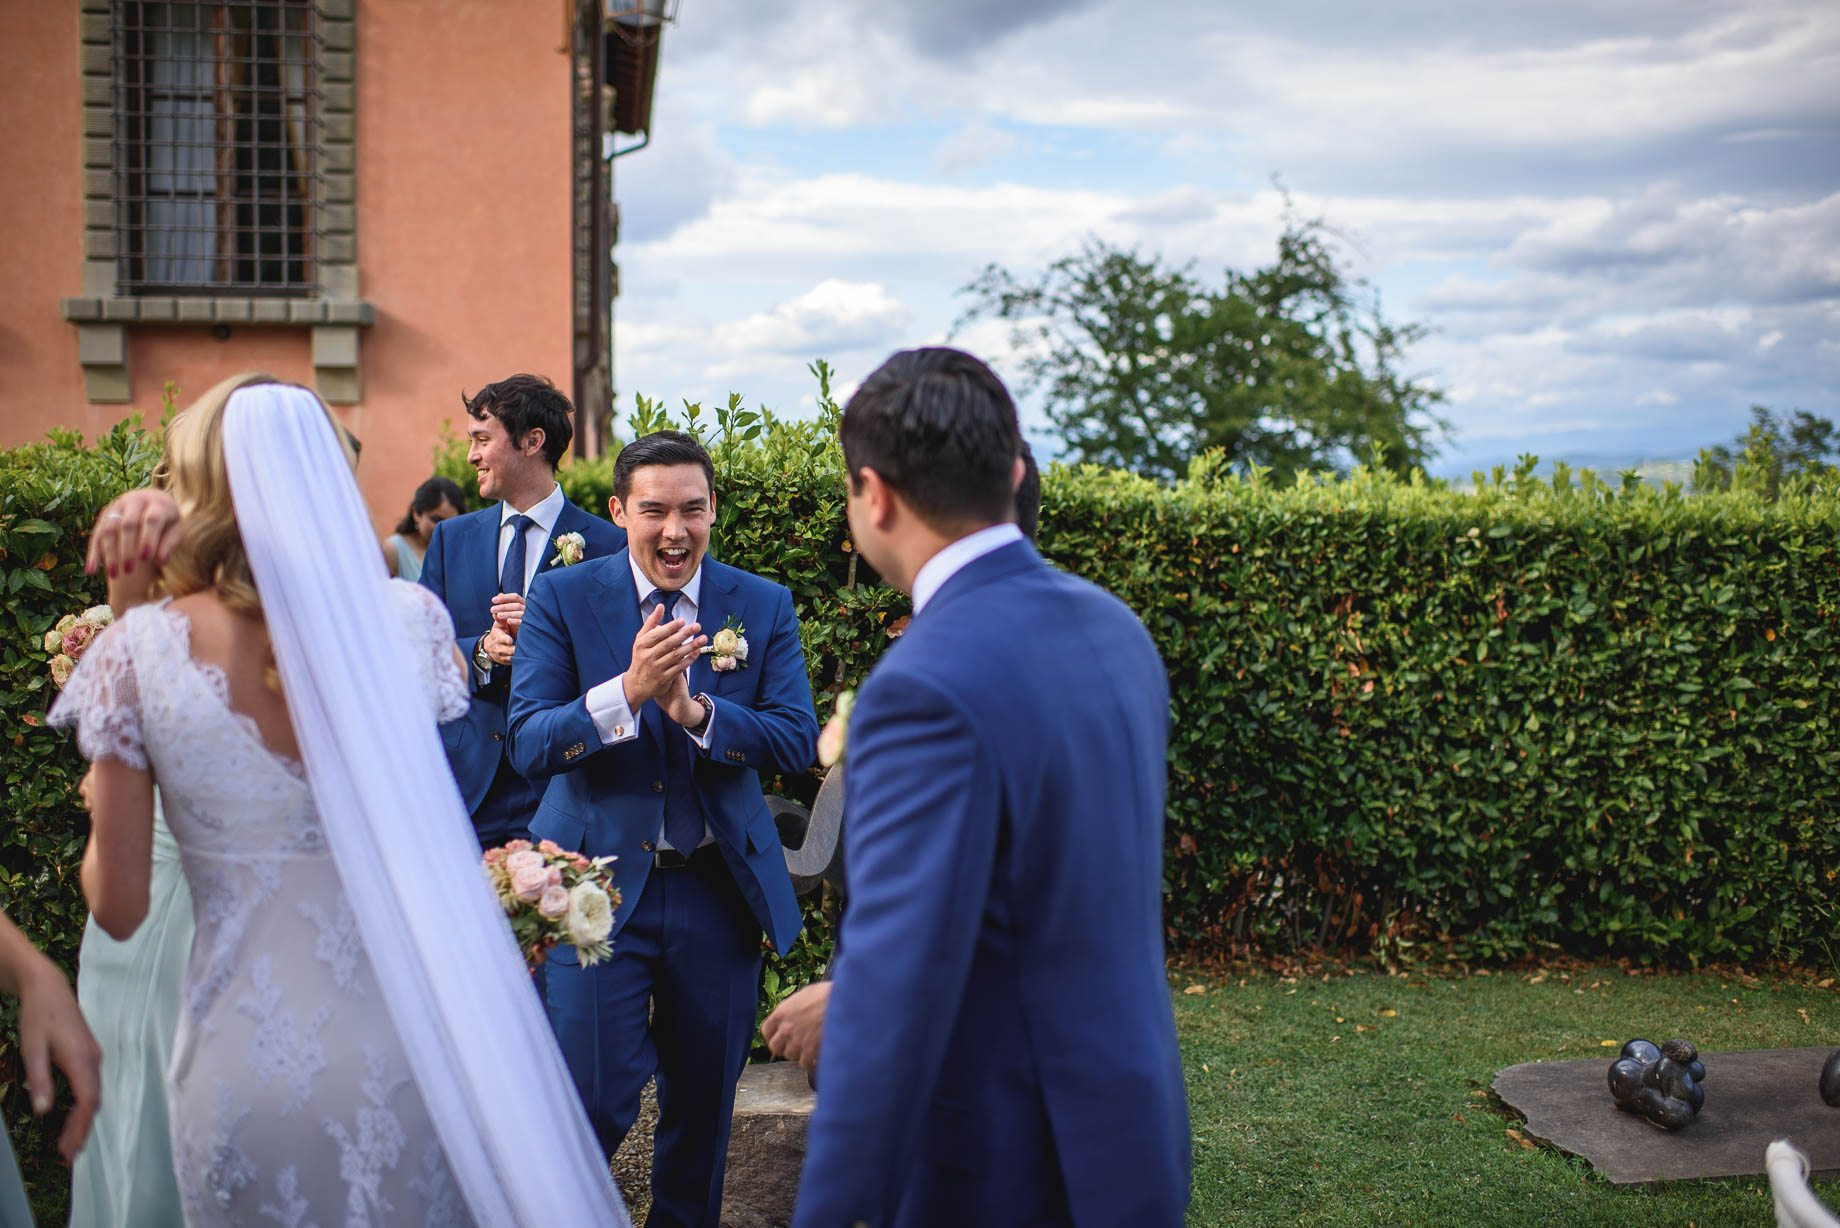 Tuscany wedding photography - Roisin and Moubin - Guy Collier Photography (118 of 251)